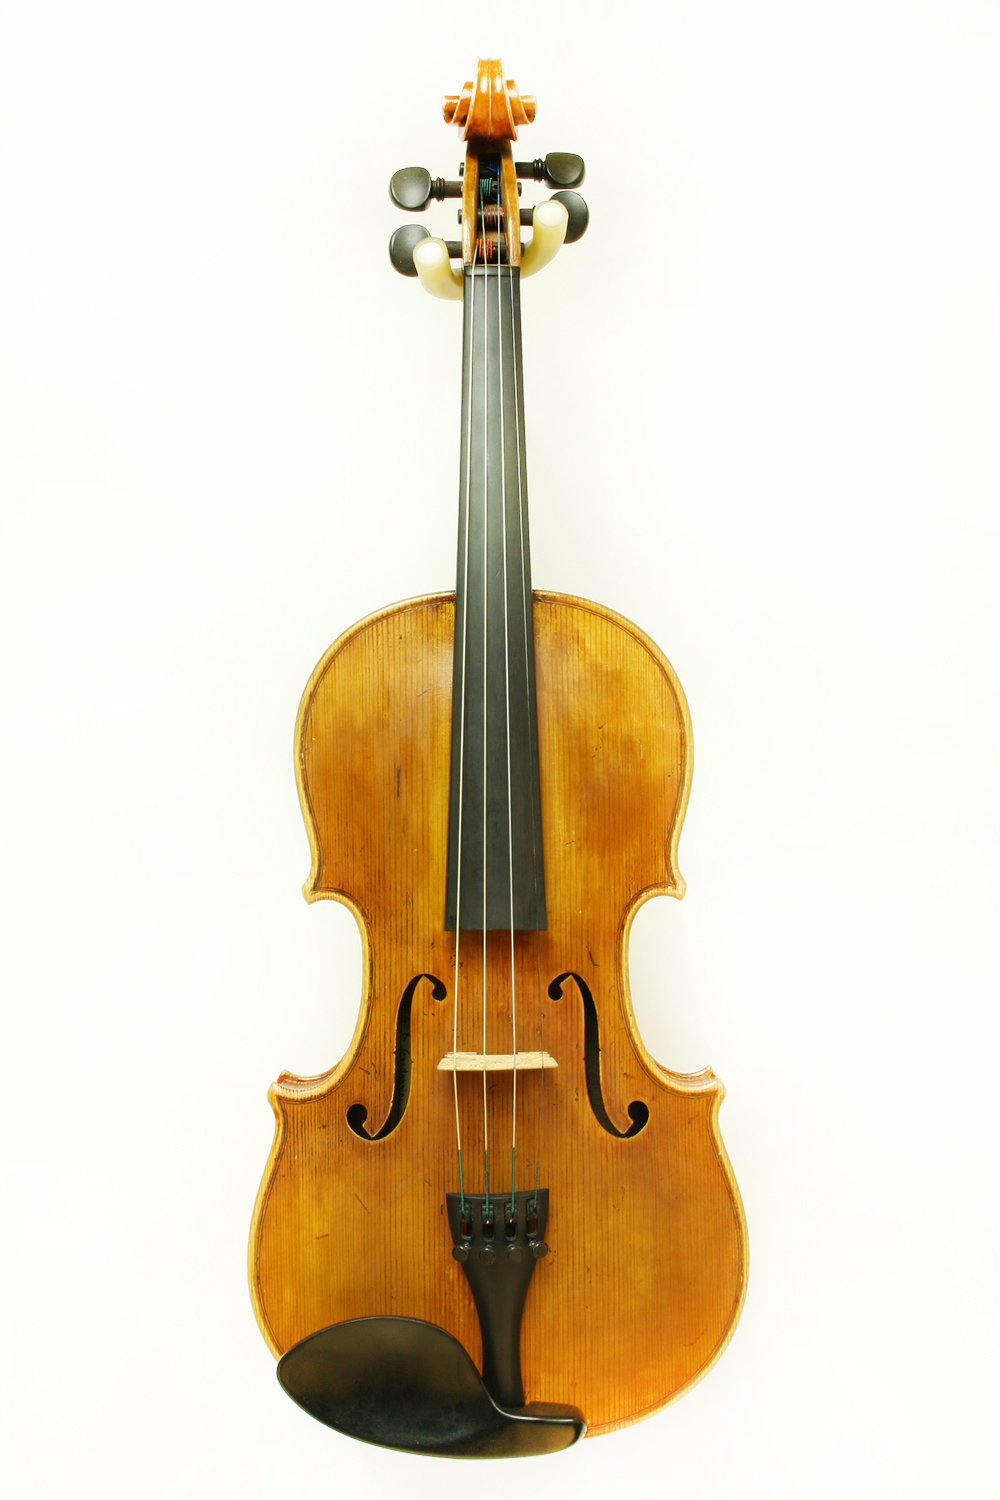 Avalon Strings Guadagnini - $3200